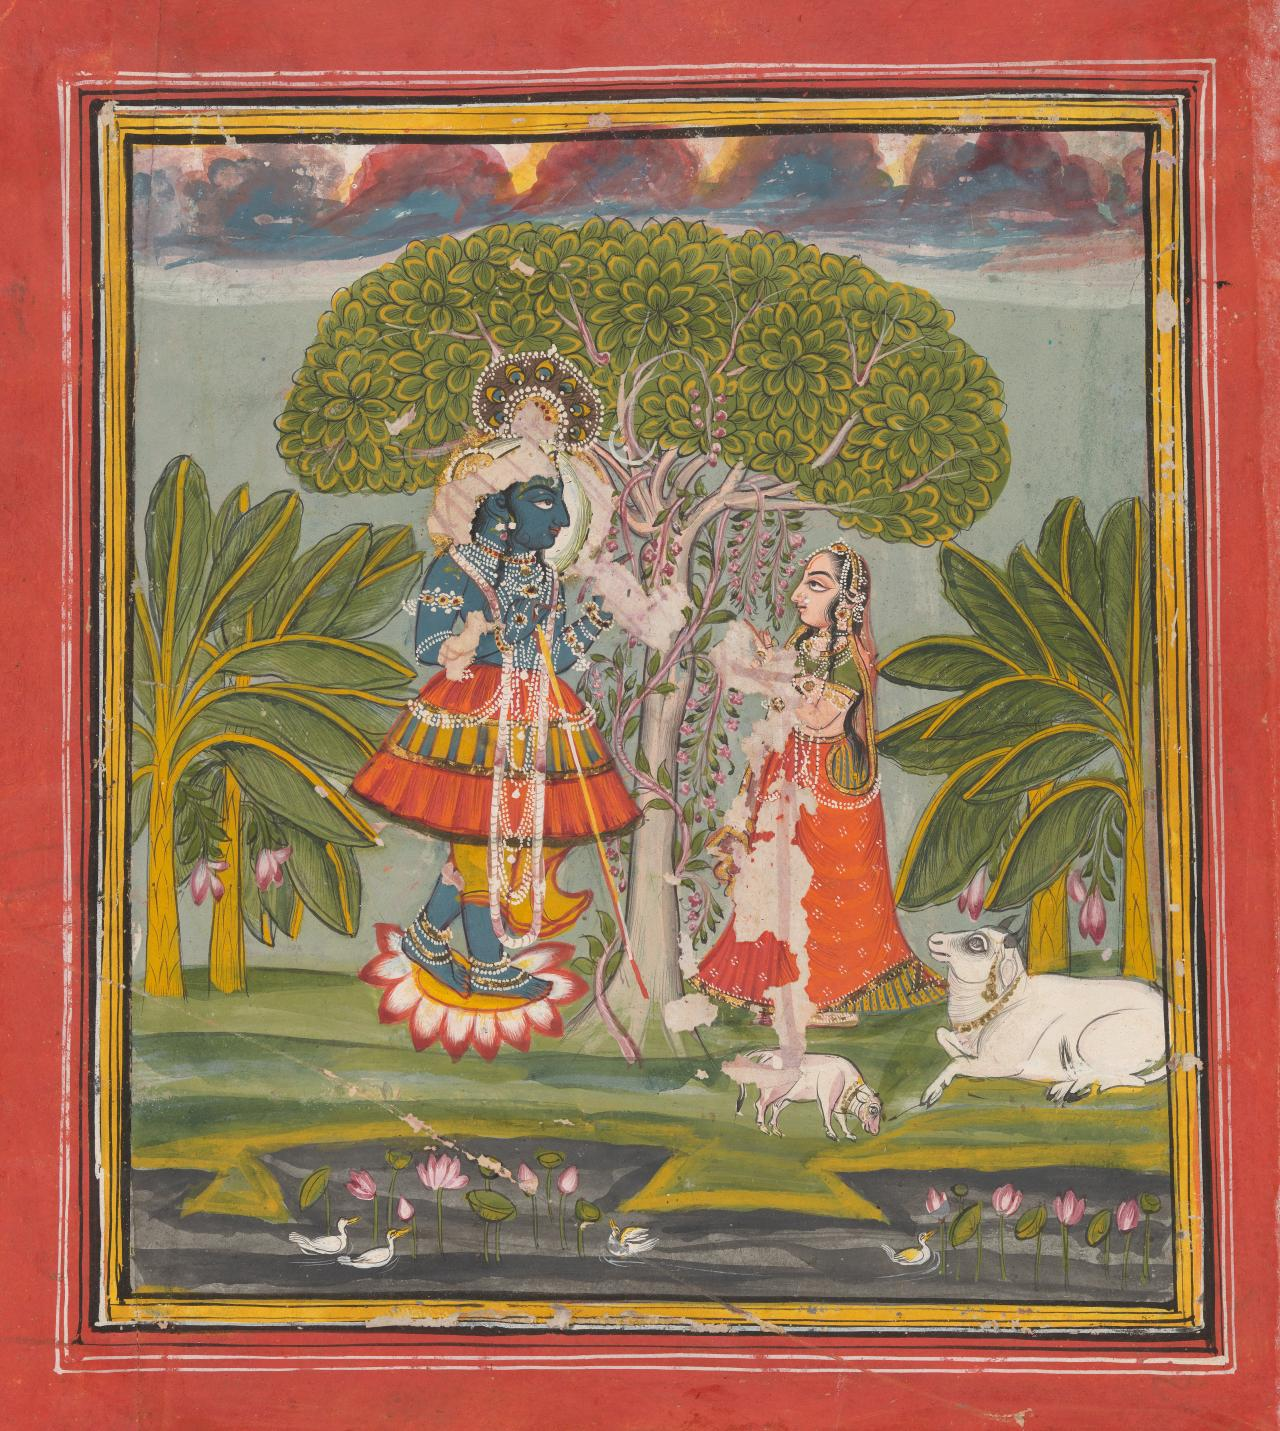 Krishna and Radha on the riverbank